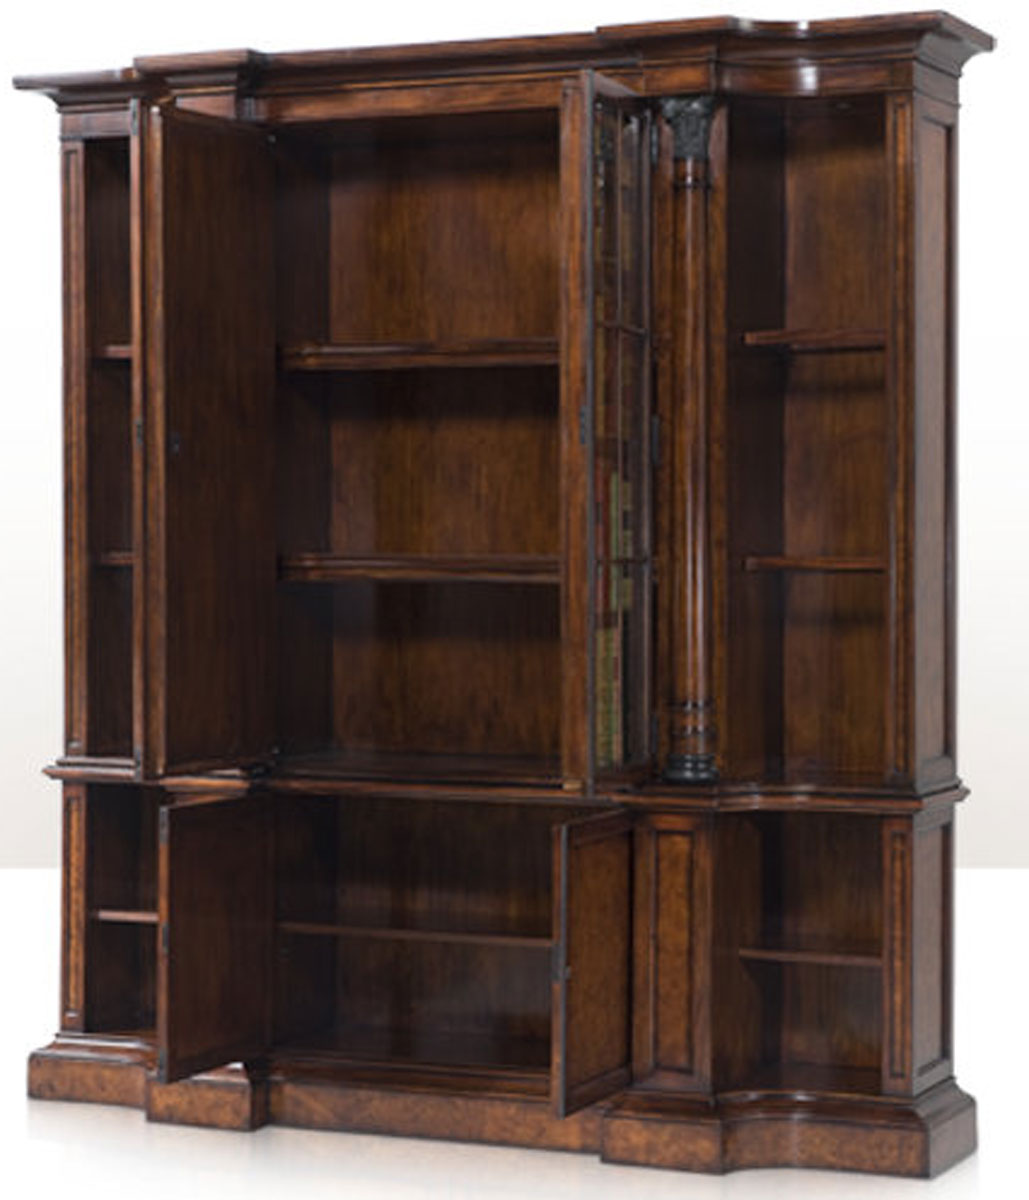 A faux book and laurel burl bookcase